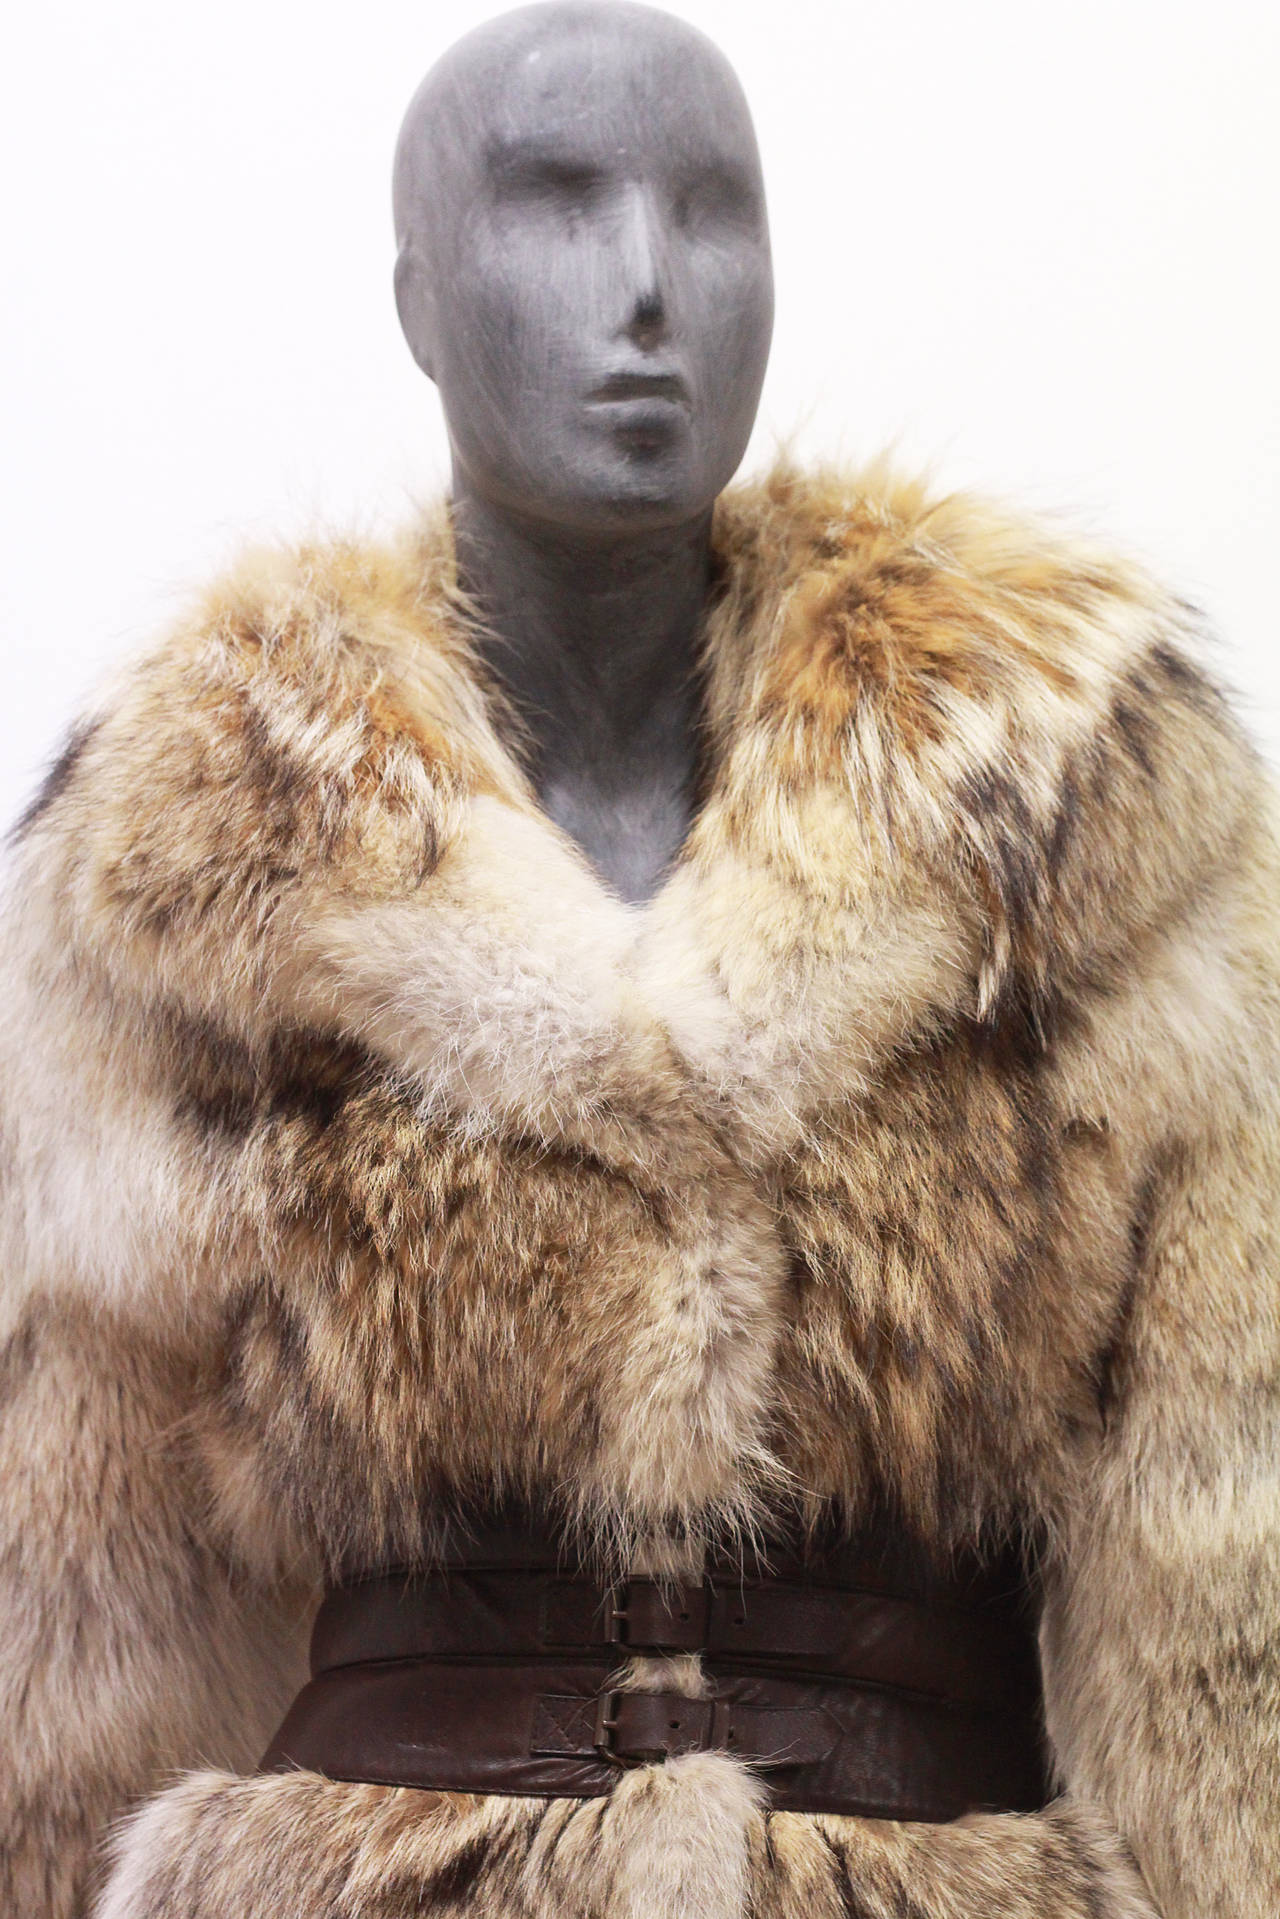 Fine and rare Alexander McQueen Corseted Coyote Fur Coat (Pre-Death) Circa 2006 2